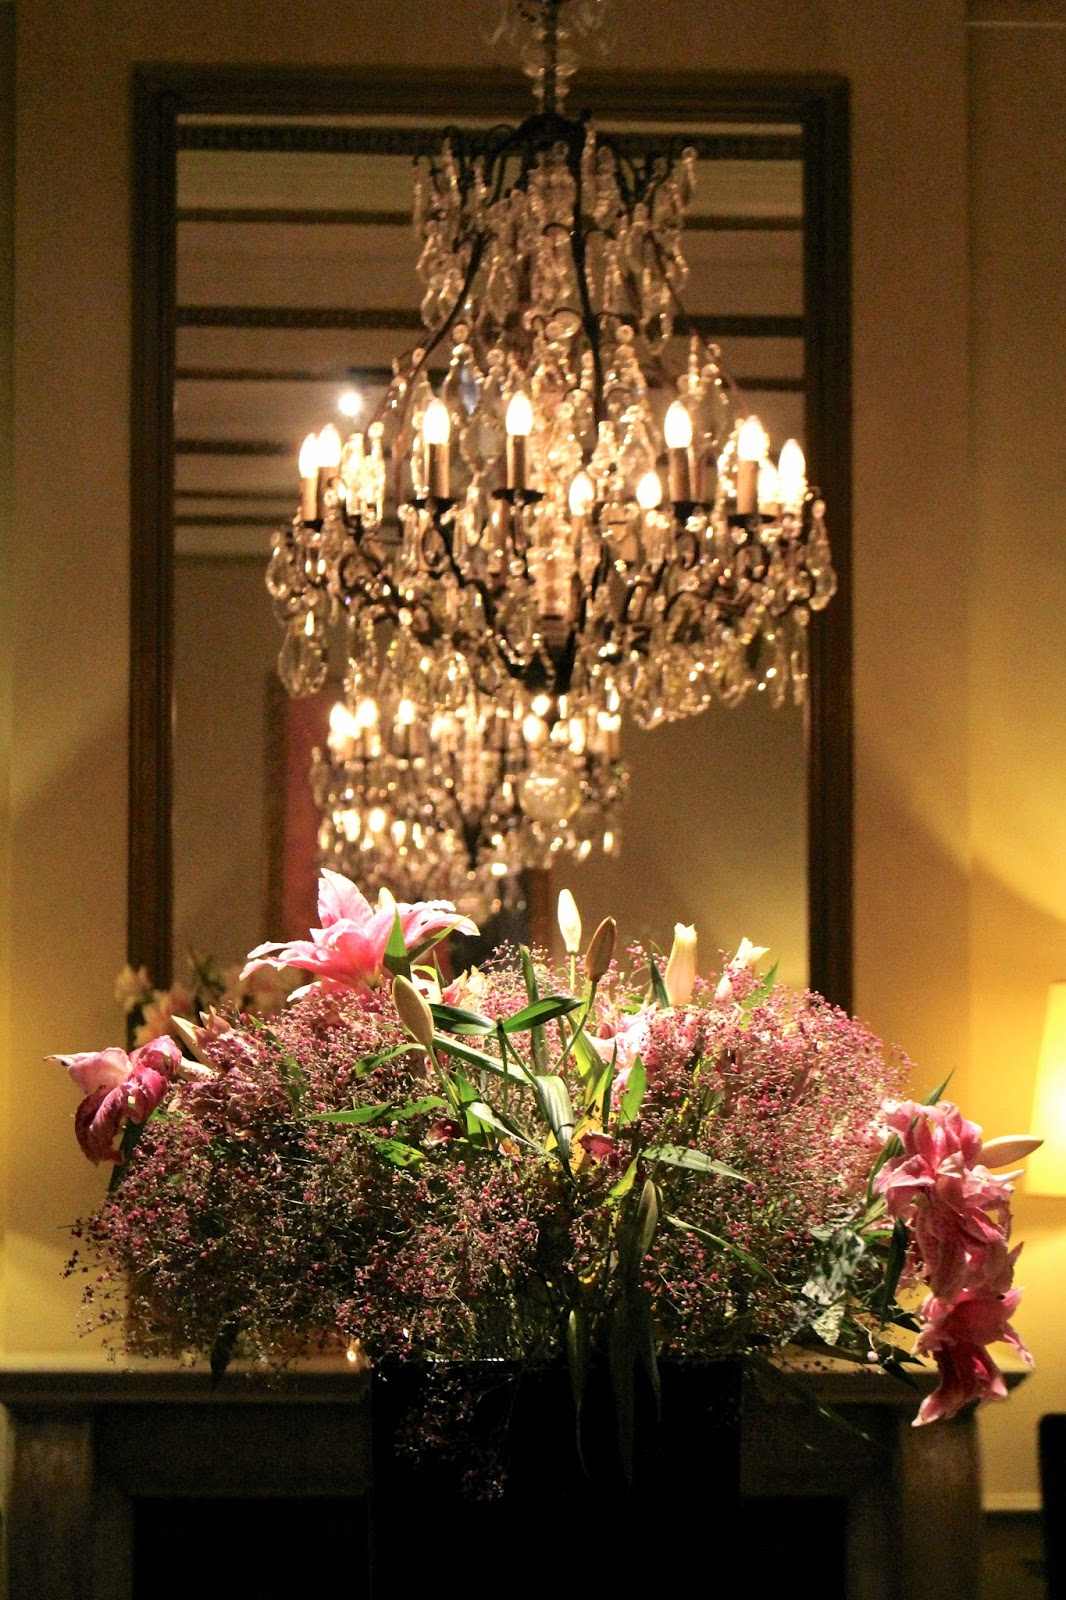 Luxurious hotel chandelier and flowers